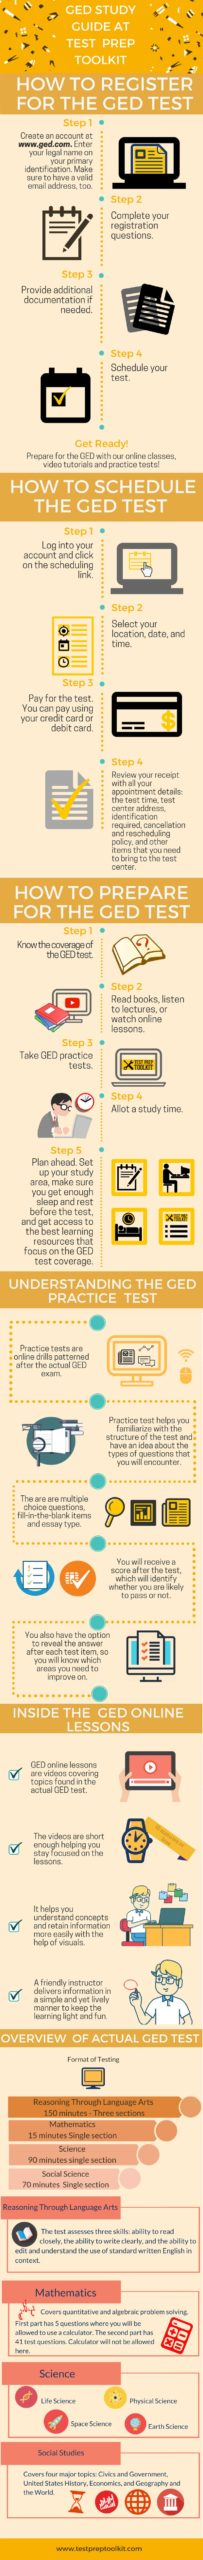 GED Test Prep Infographic